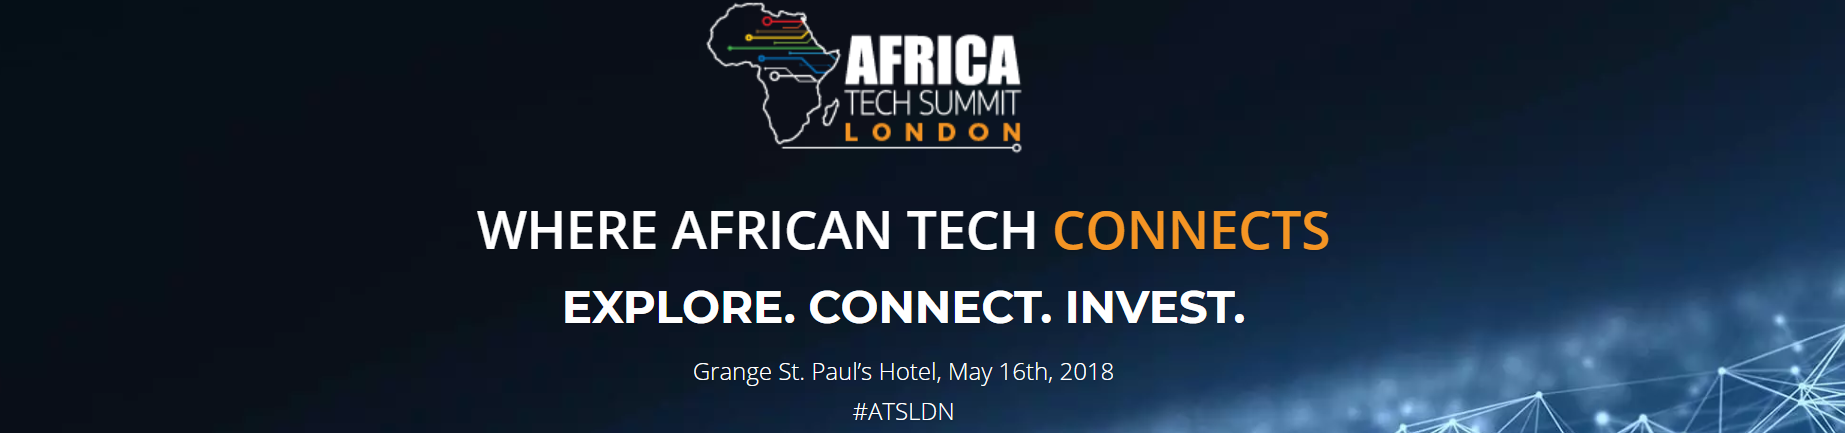 Africa Tech Summit London 2018